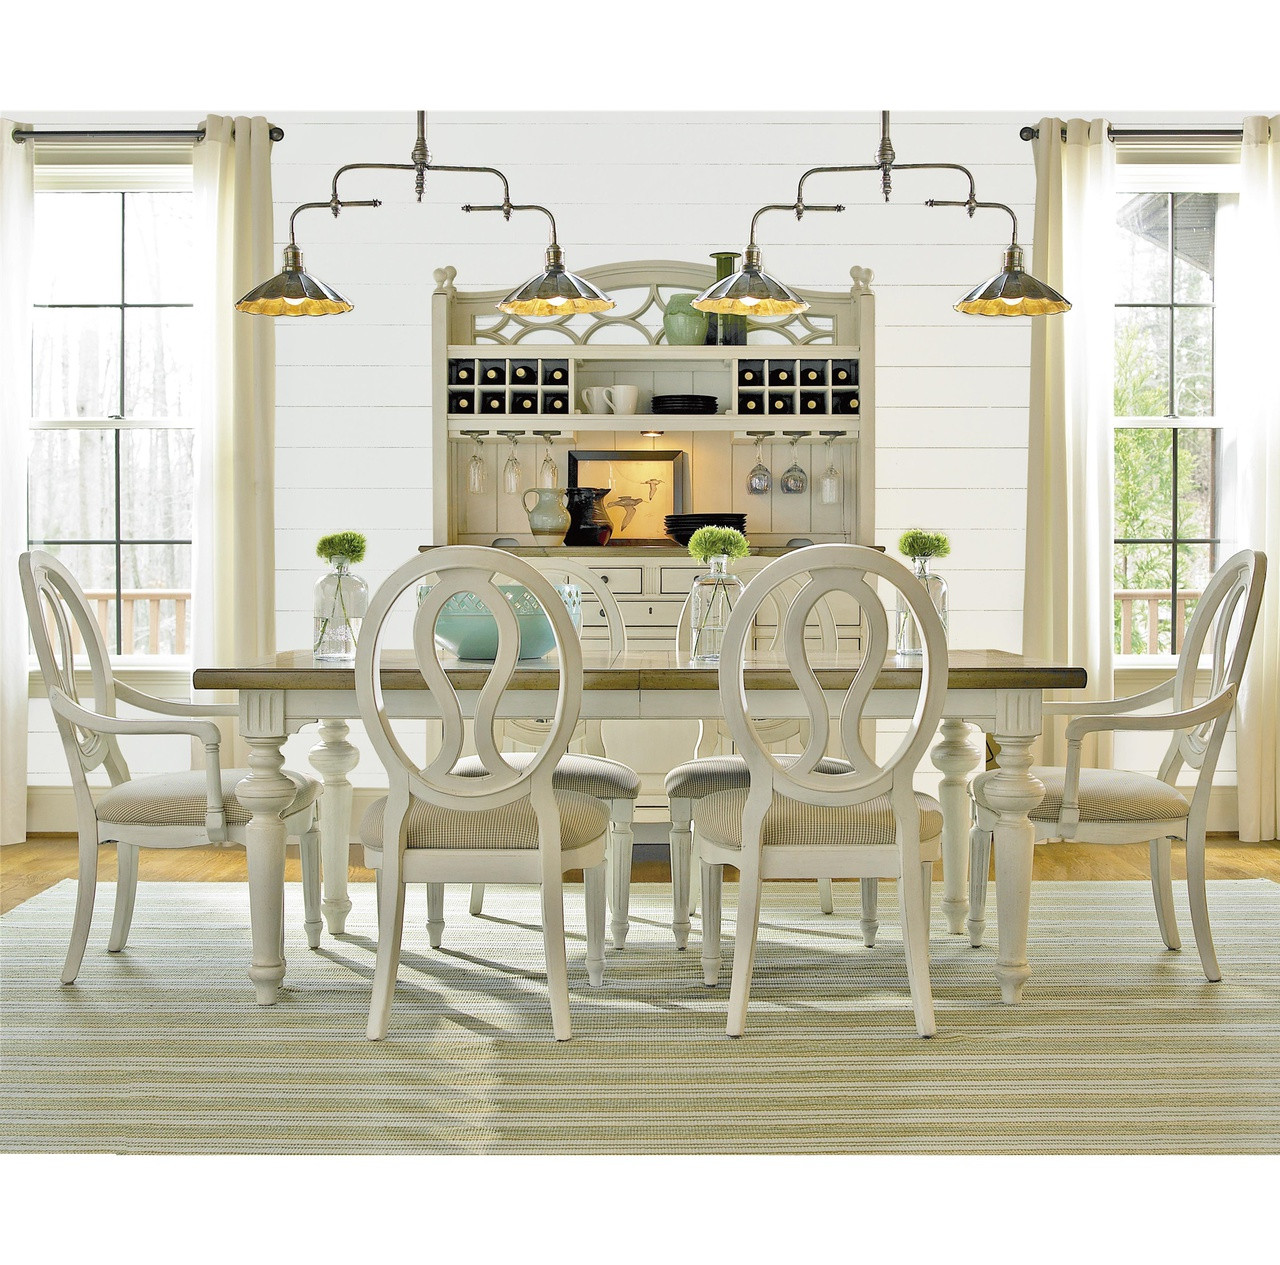 Expandable Dining Room Sets: Country-Chic Wood 7 Piece White Expandable Dining Room Set